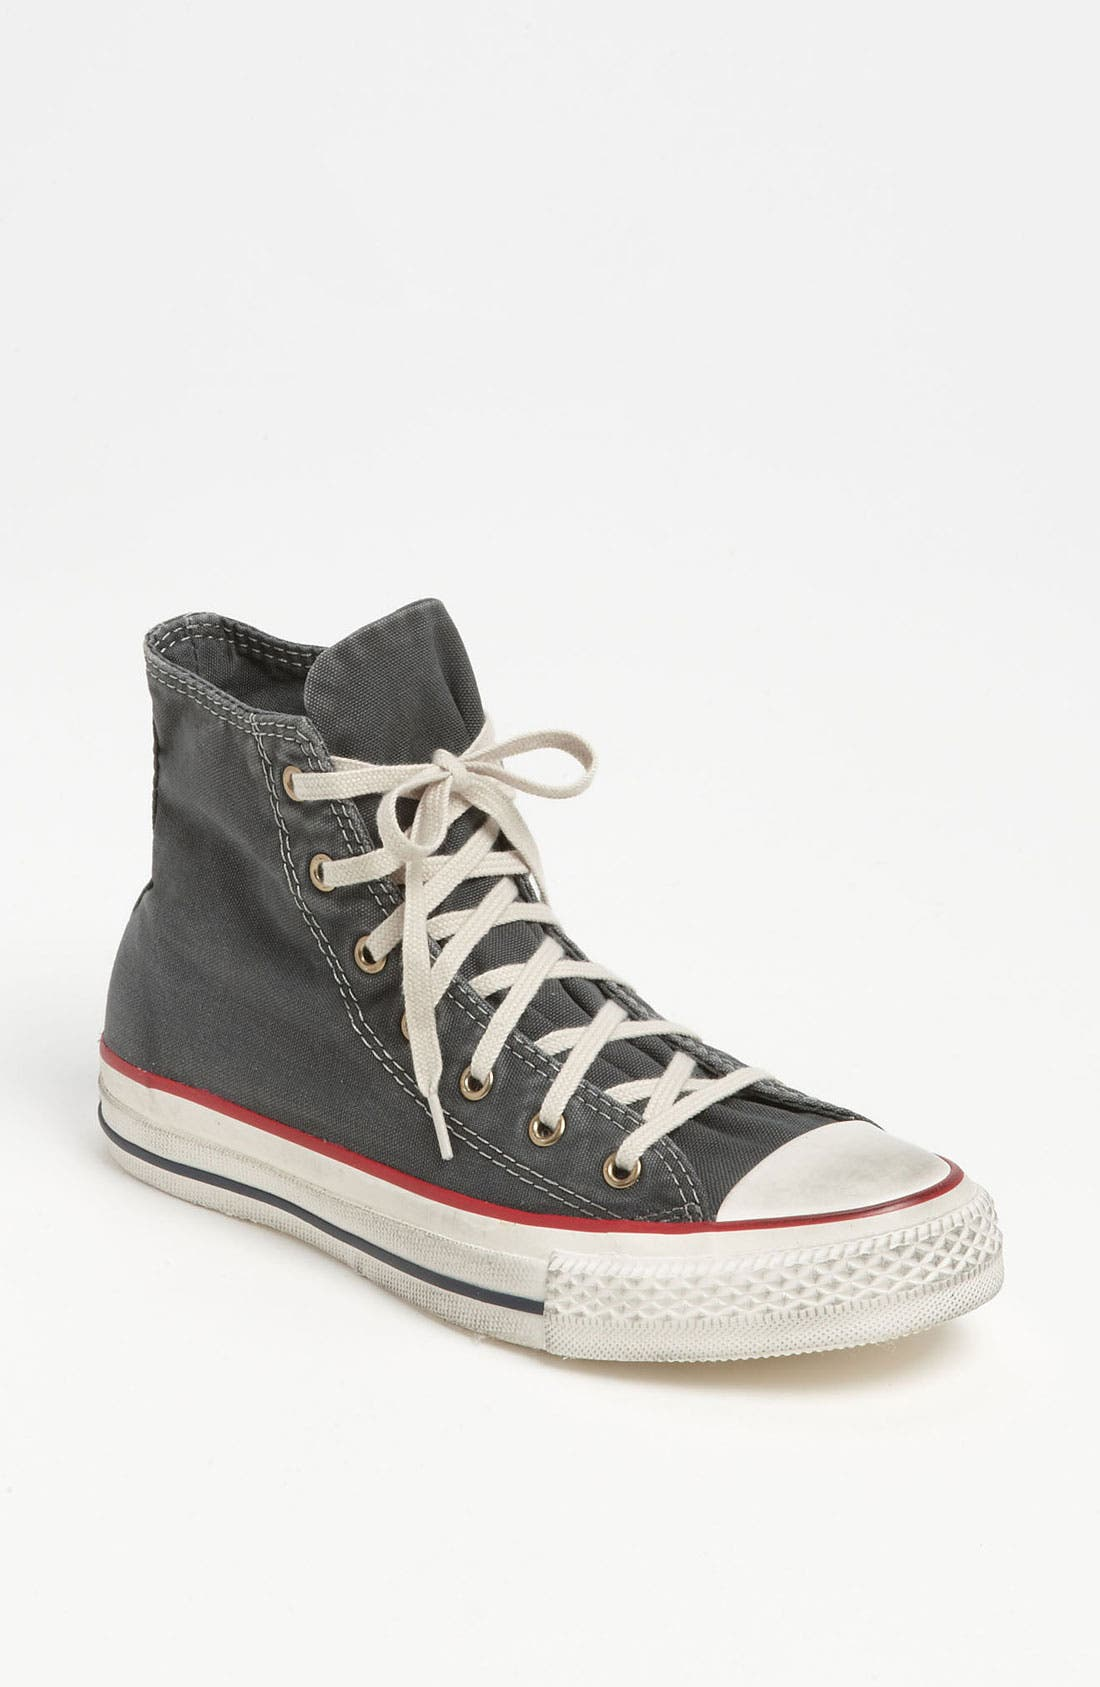 Alternate Image 1 Selected - Converse Chuck Taylor® All Star® Washed High Top Sneaker